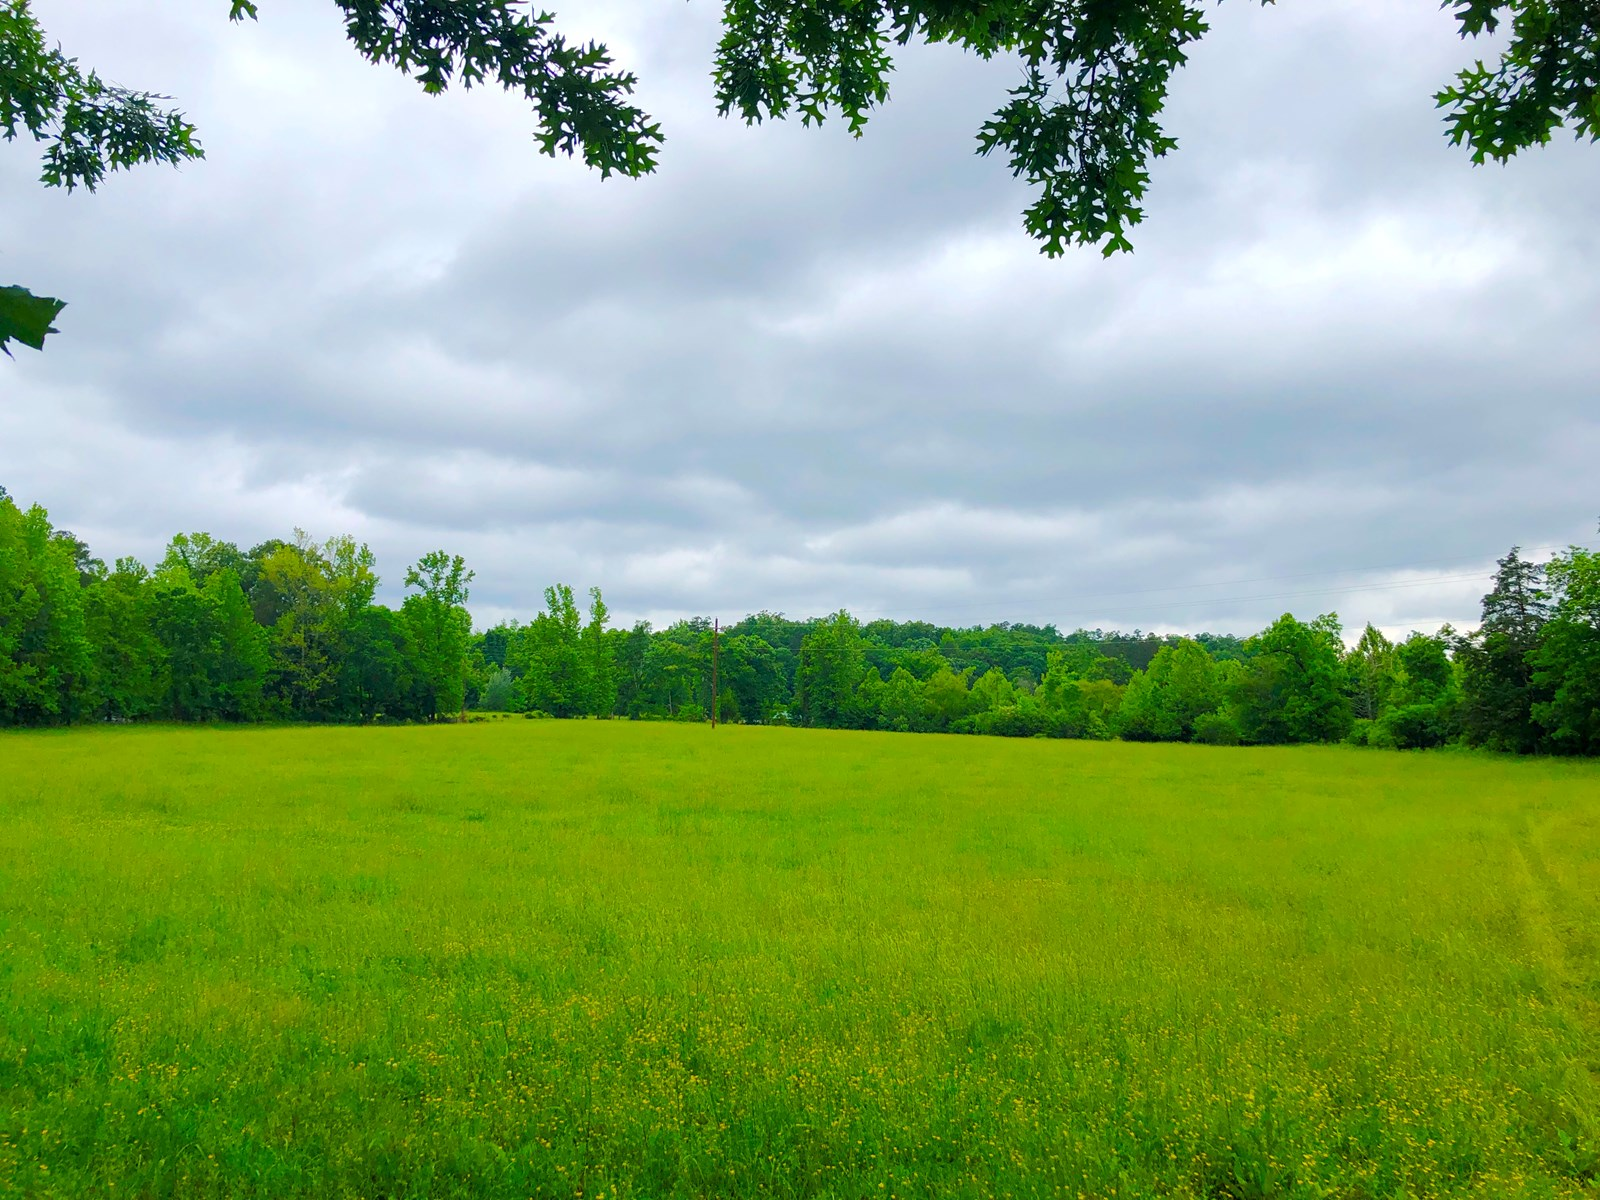 Land for sale, Pasture land, Hay, Hot Springs Village, AR